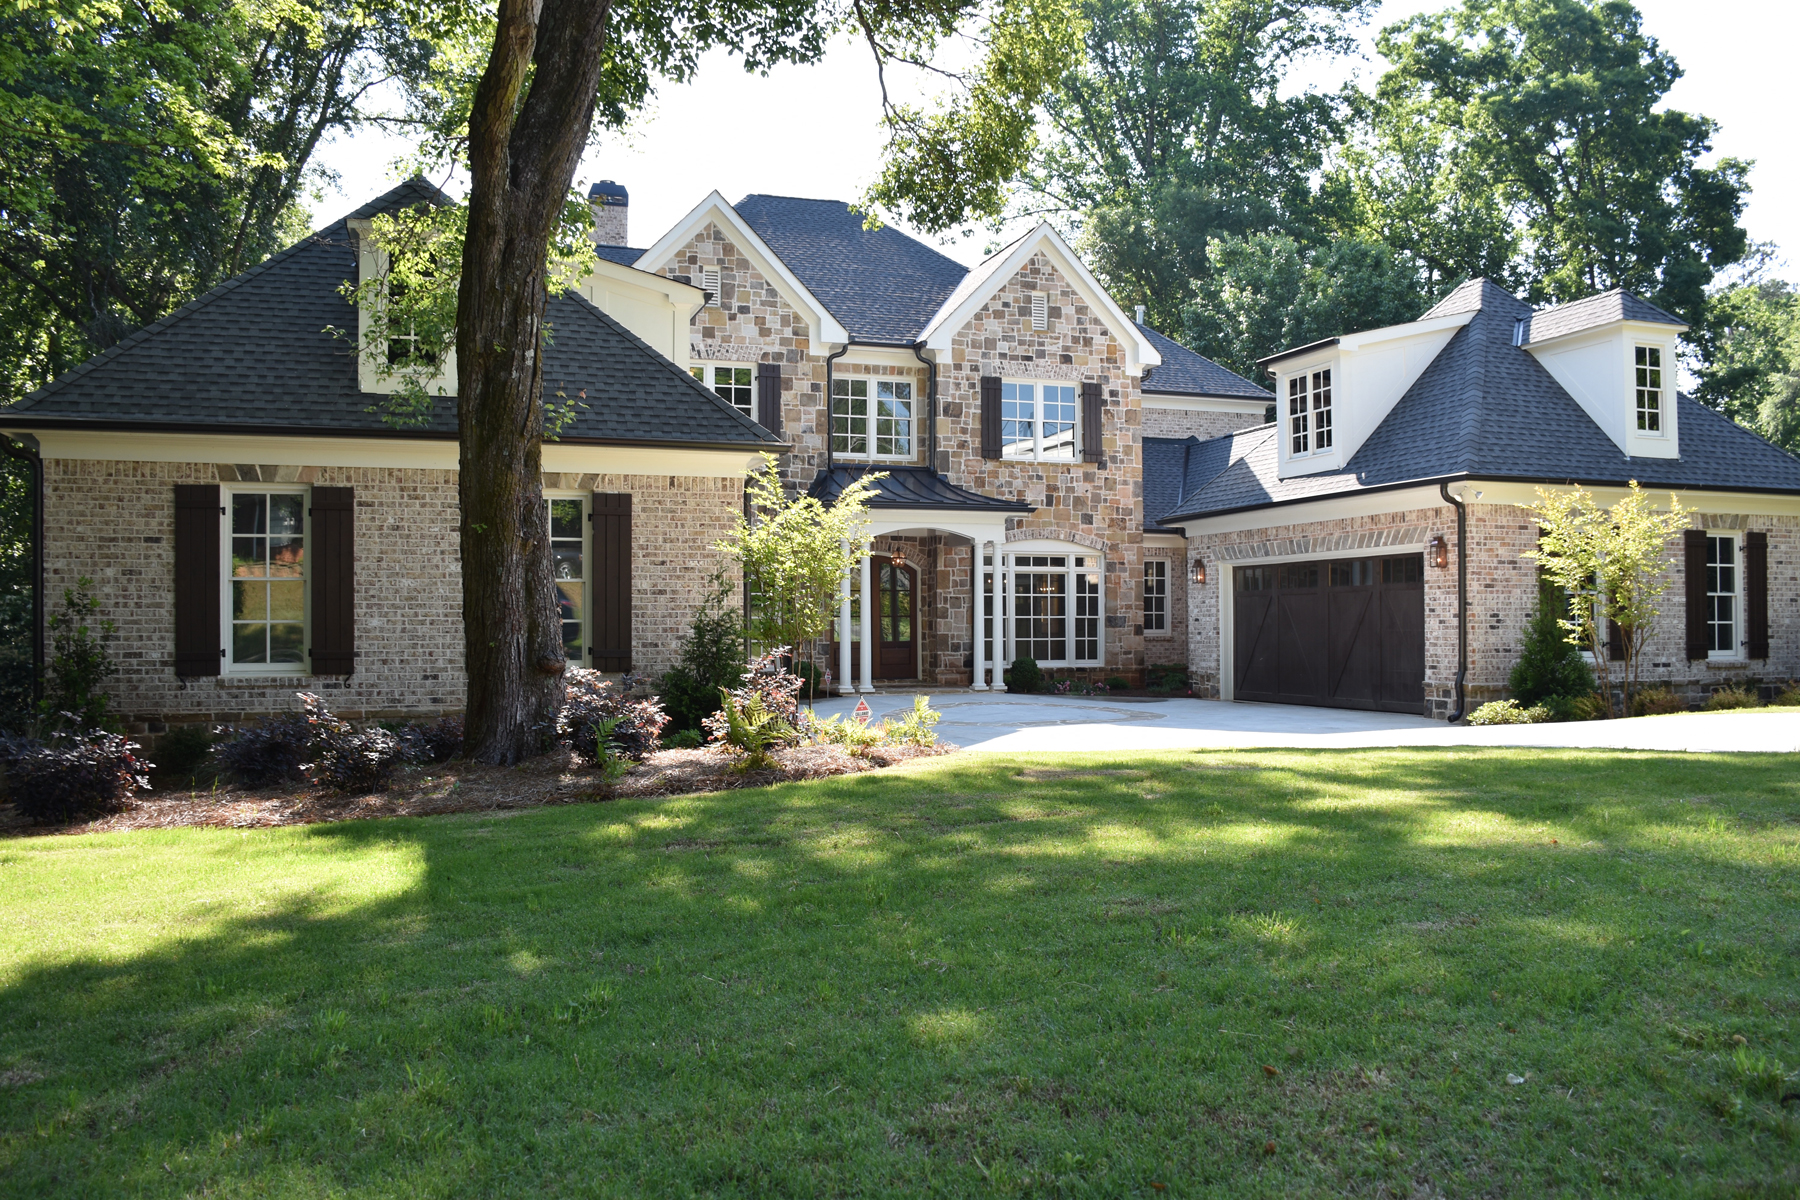 Single Family Home for Active at New Home In Chastain 4685 Lake Forrest Drive Atlanta, Georgia 30342 United States